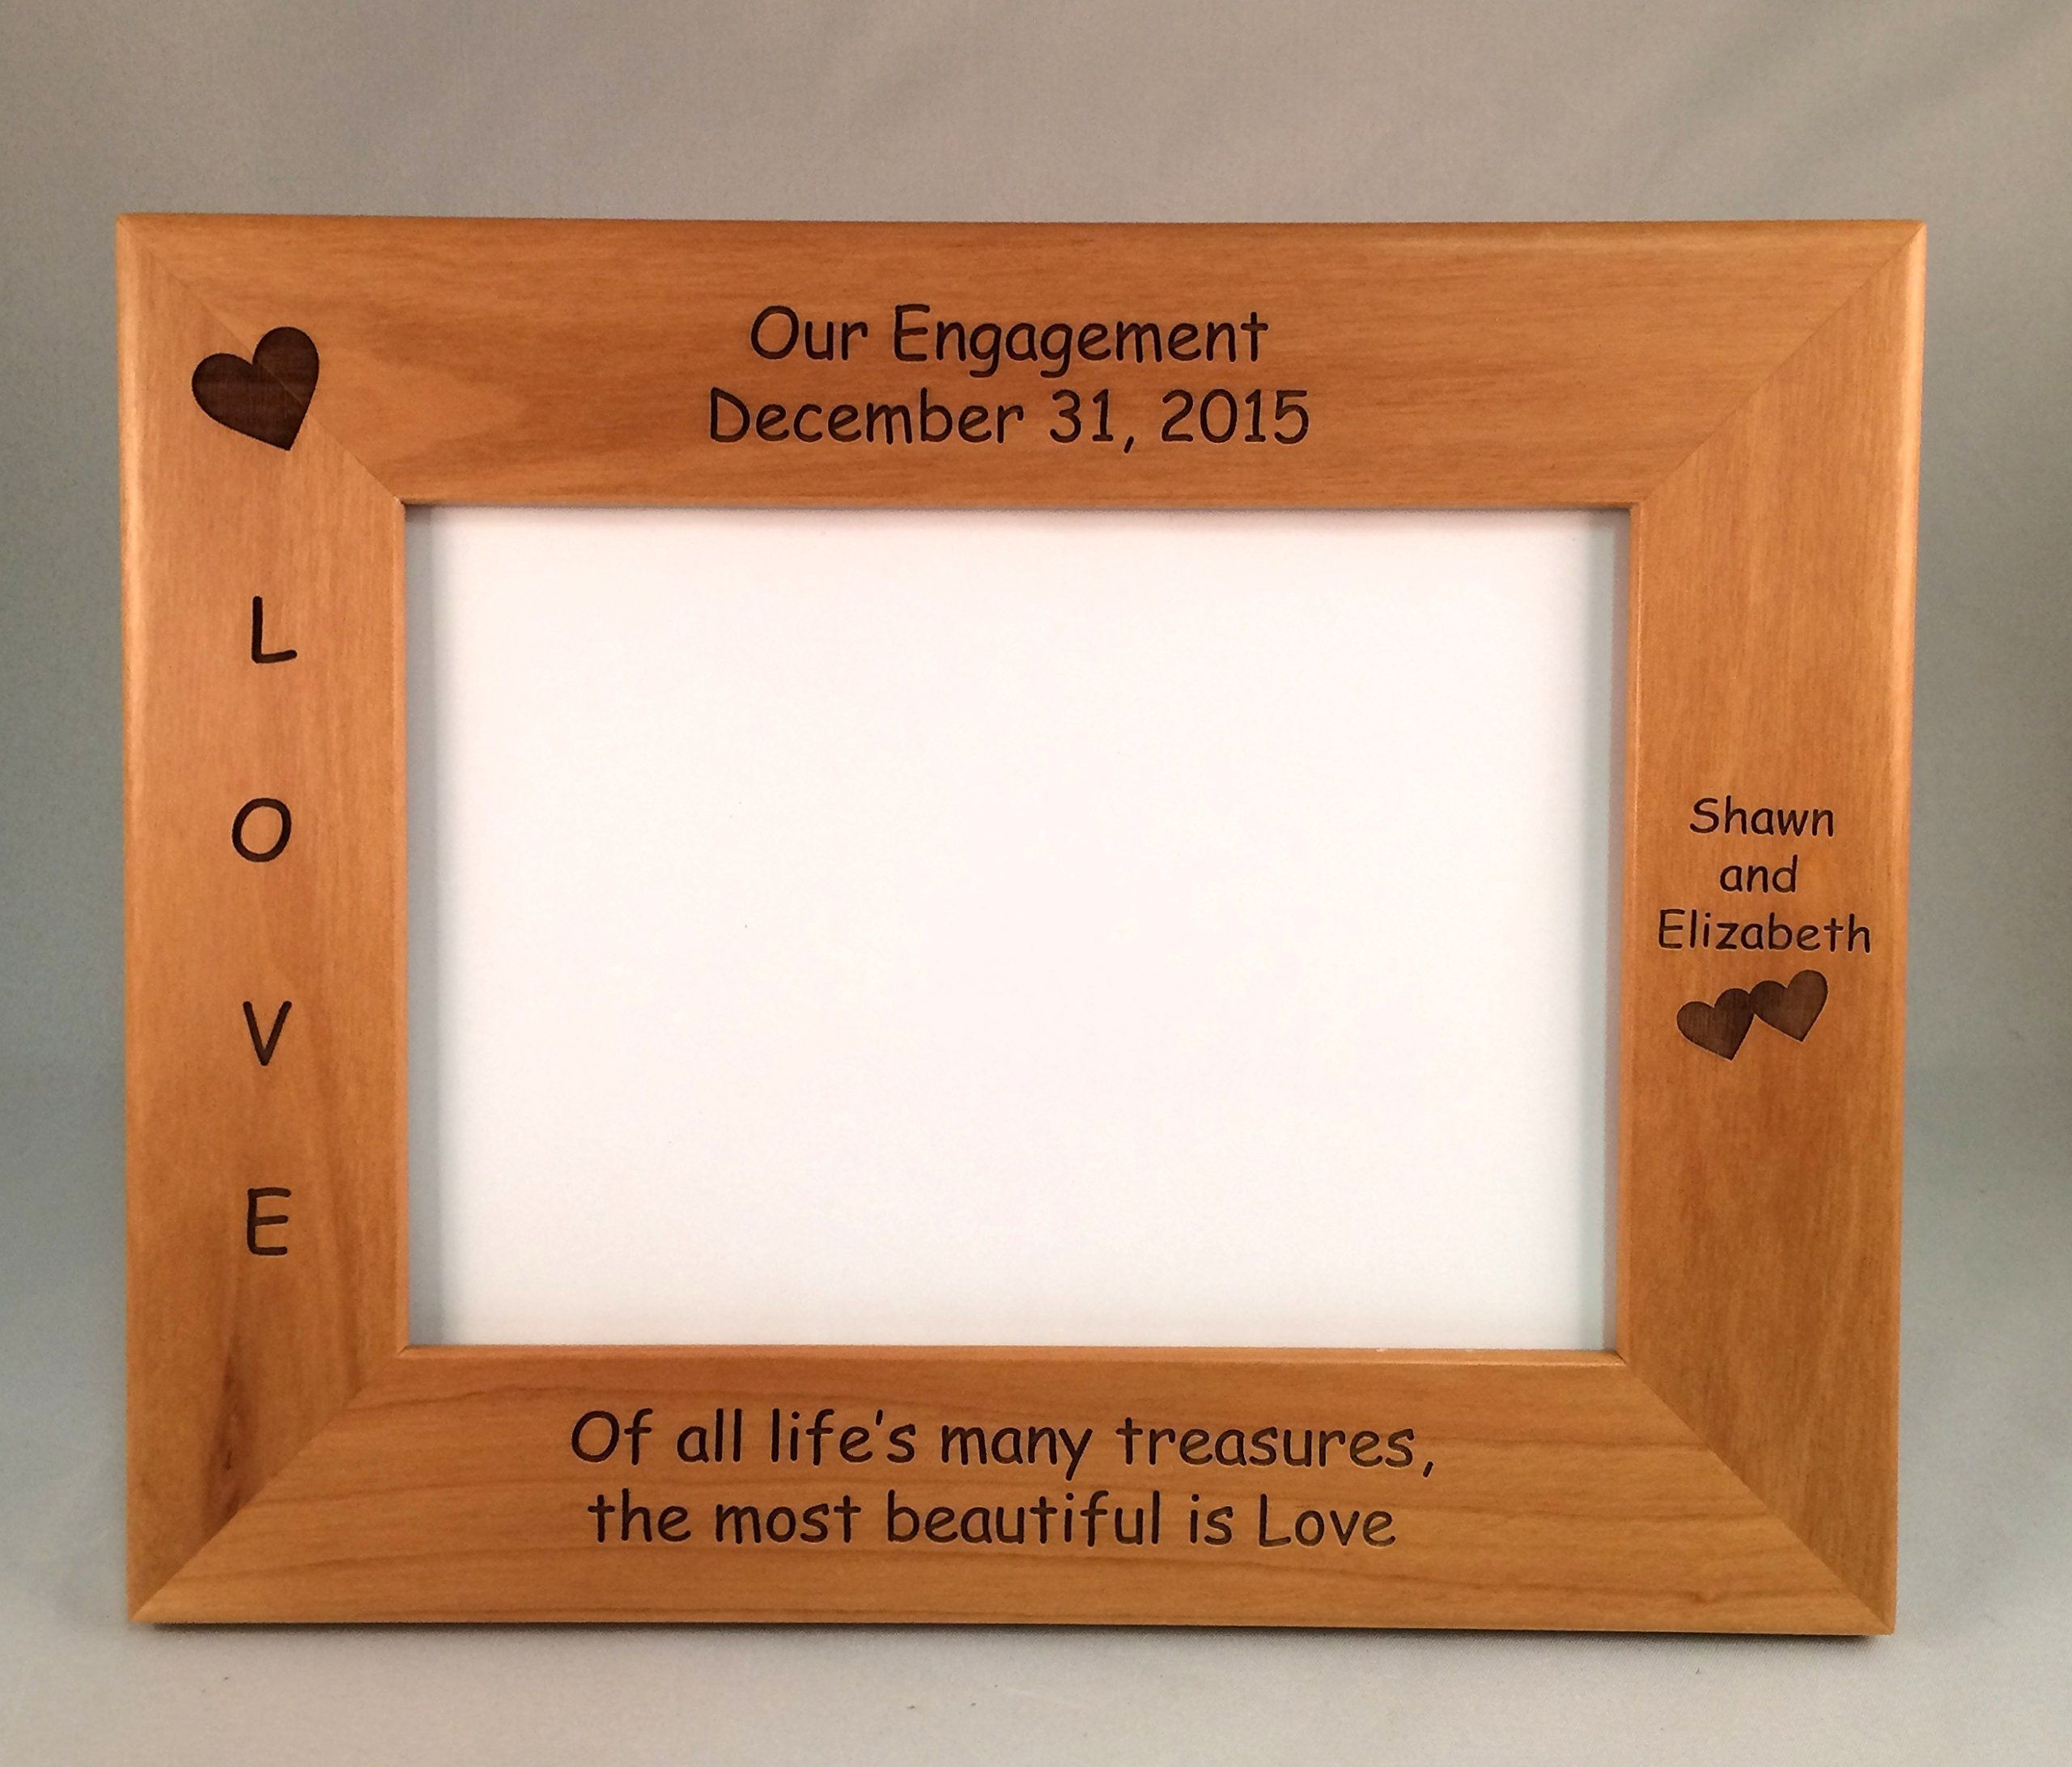 Engagement Laser Engraved Personalized 5 x 7 Photo Frame. This ...